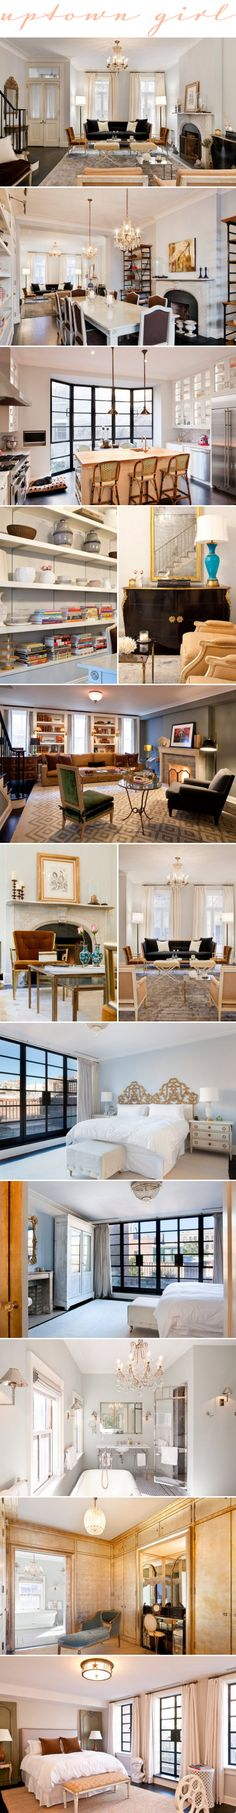 Katie Lee's home by Nate Berkus = PERFECTION.